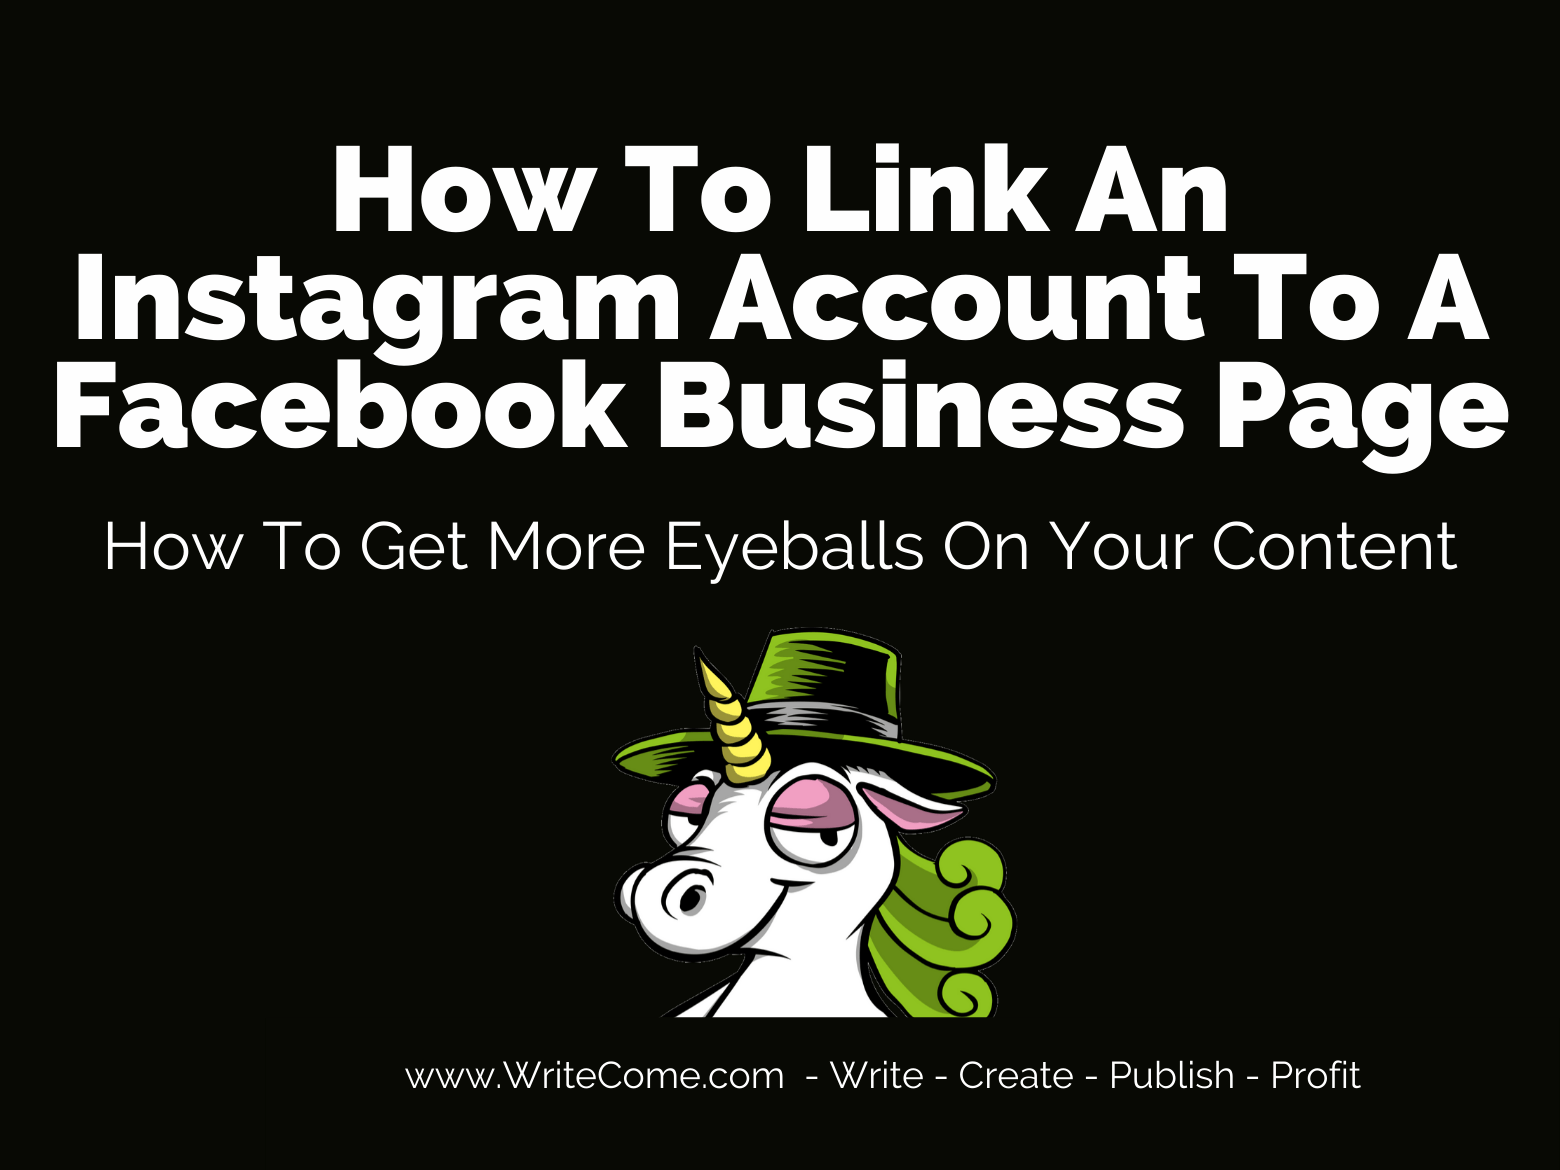 How To Link An Instagram Account To Facebook